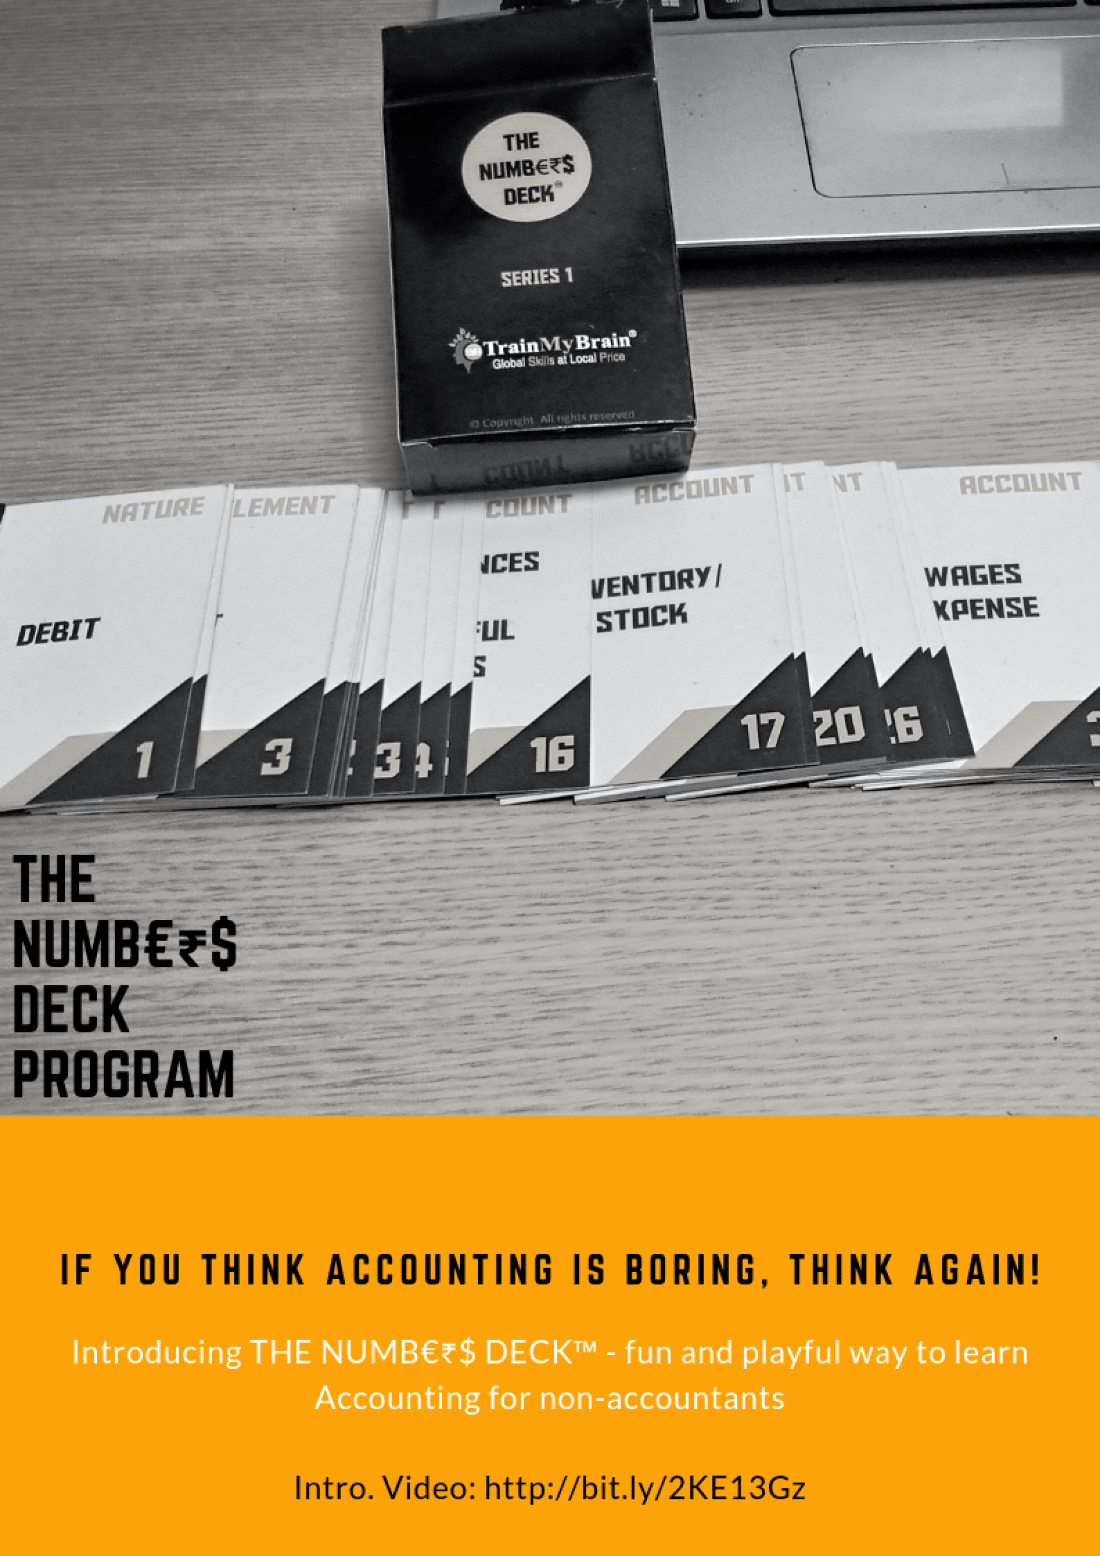 The Numbers Deck - Accounting for Non-Accounting using deck of 52 cards